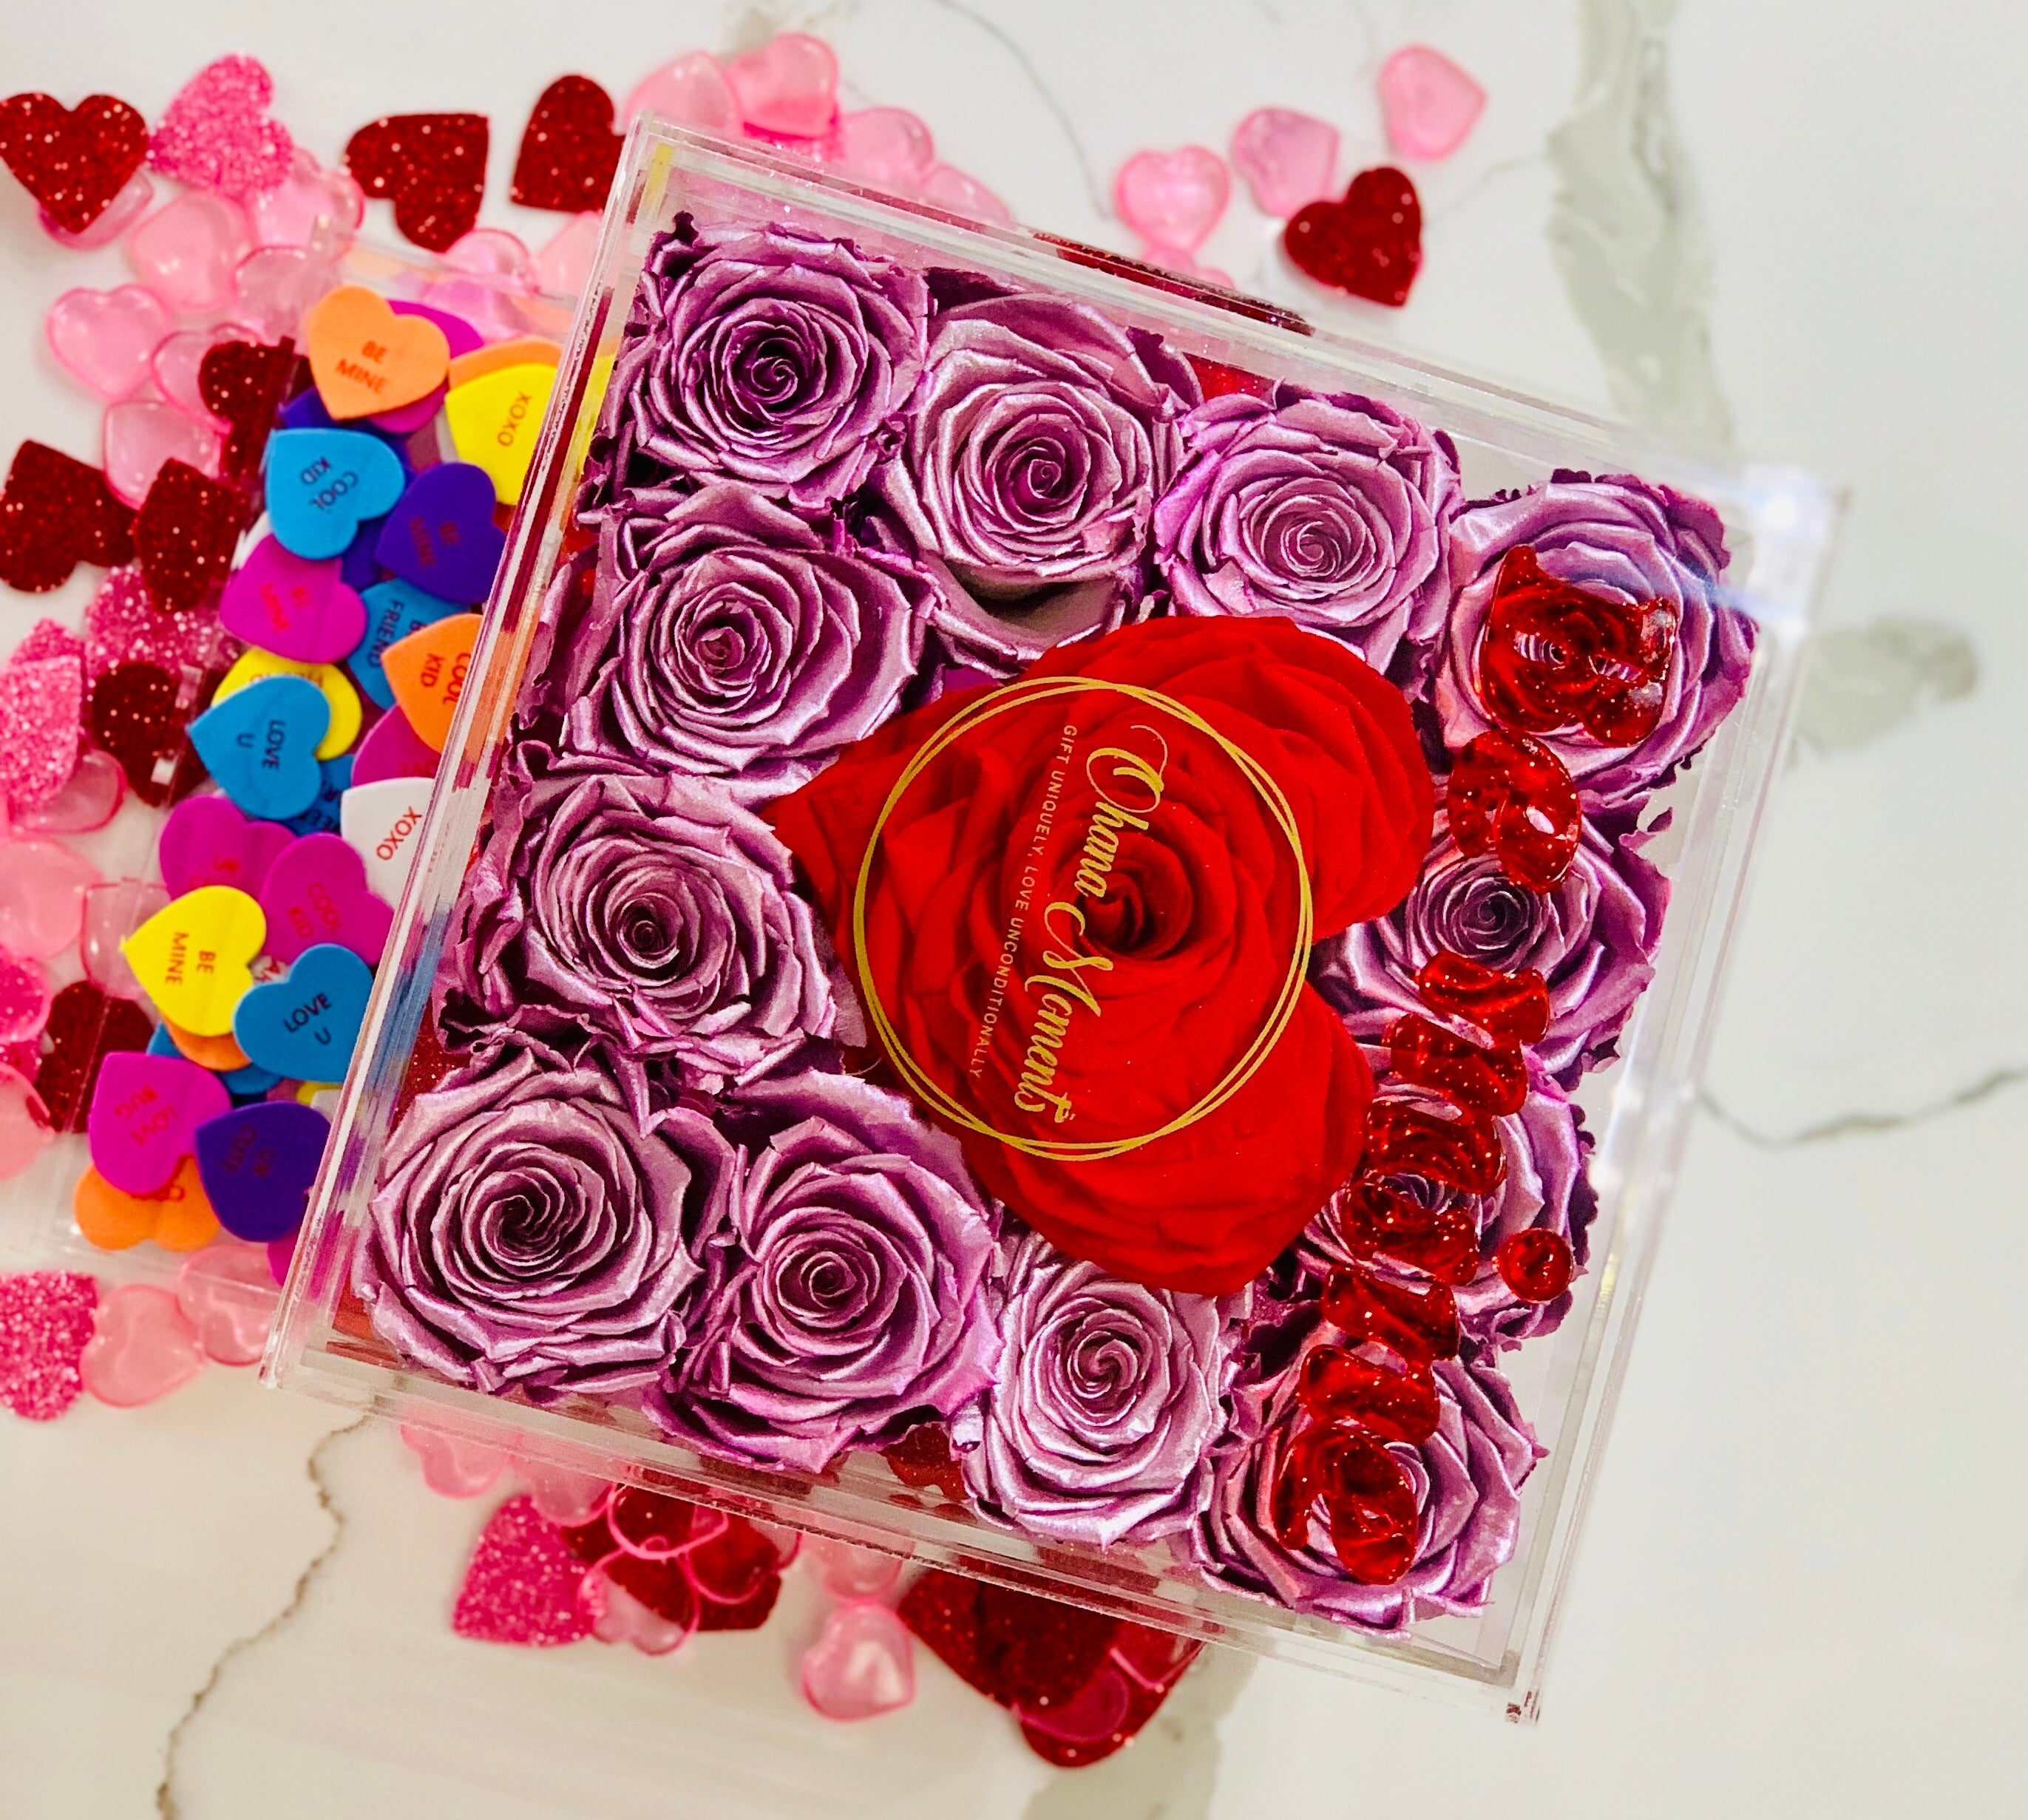 Modern Rose Box with preserved roses that last for years with metallic pink roses and accented with a red petal heart and jewelry drawer